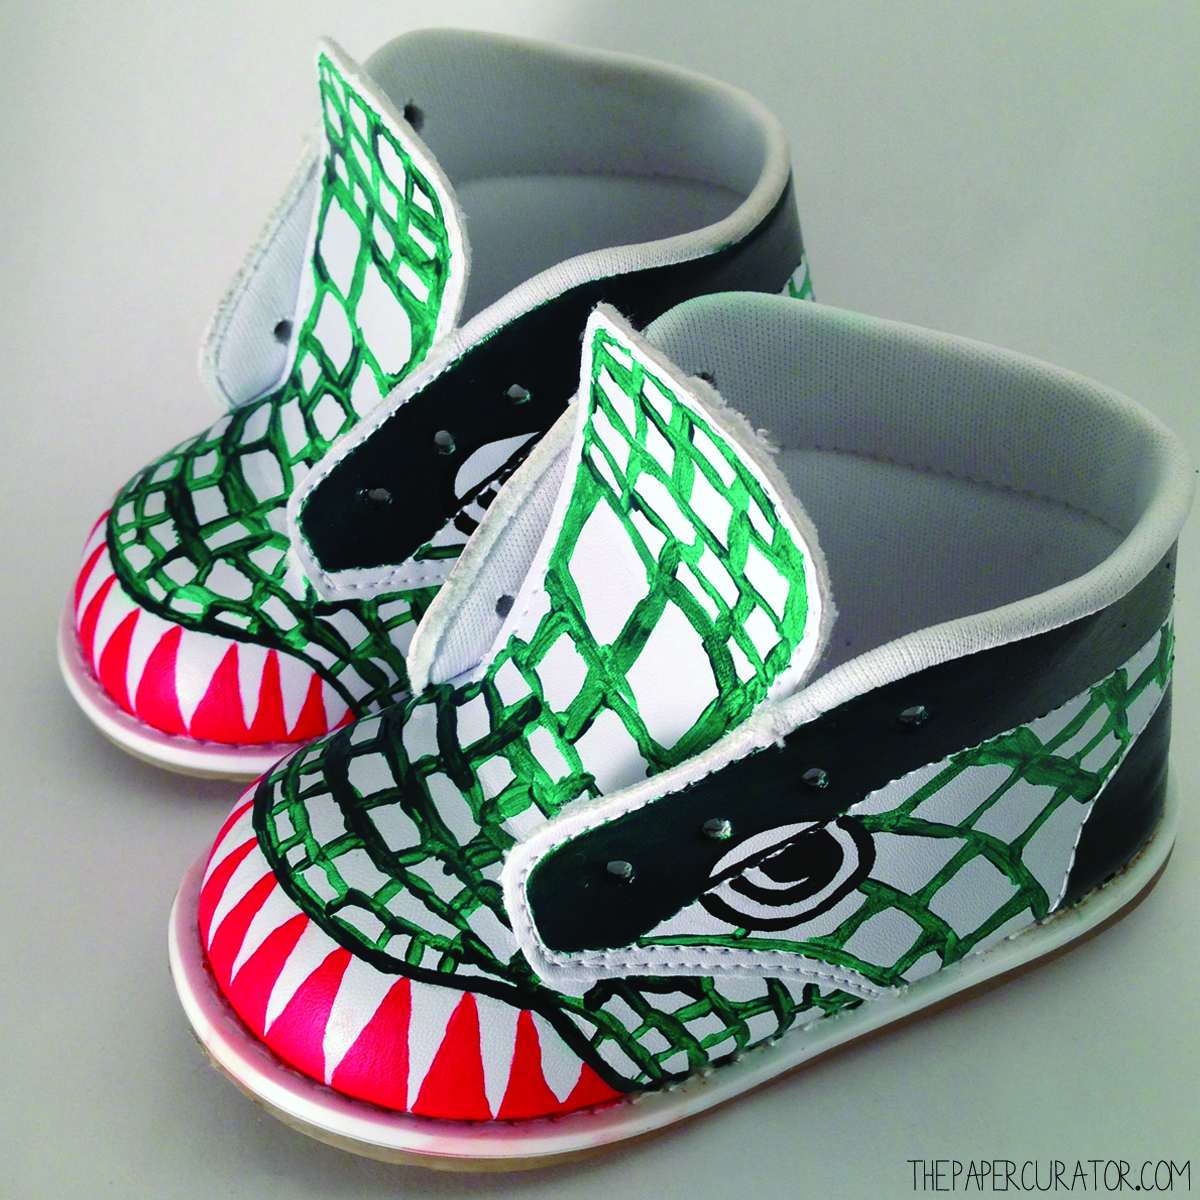 DINOSAUR SHOE WITH TEETH AND DARK GREEN COMPLETED, EYES OUTLINED AND SCALE OUTLINES STARTED.